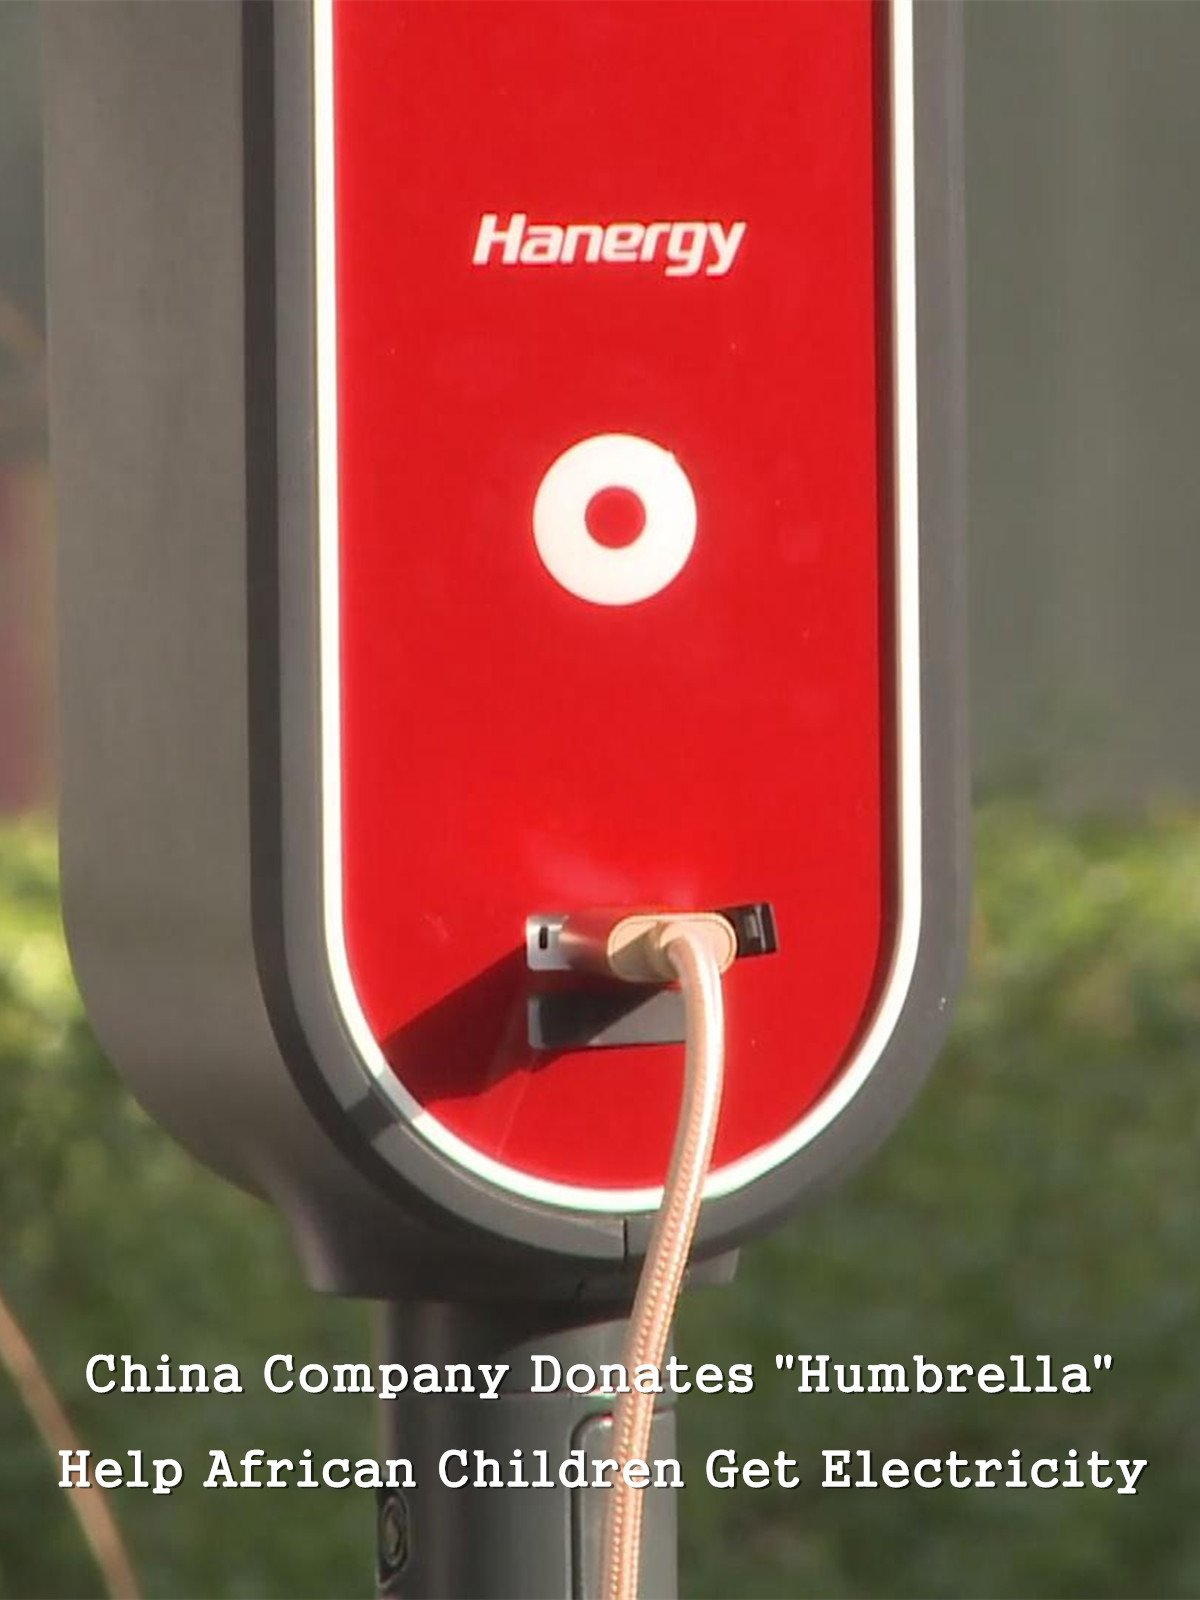 China Company Donates Humbrella to Help African Children Get Electricity